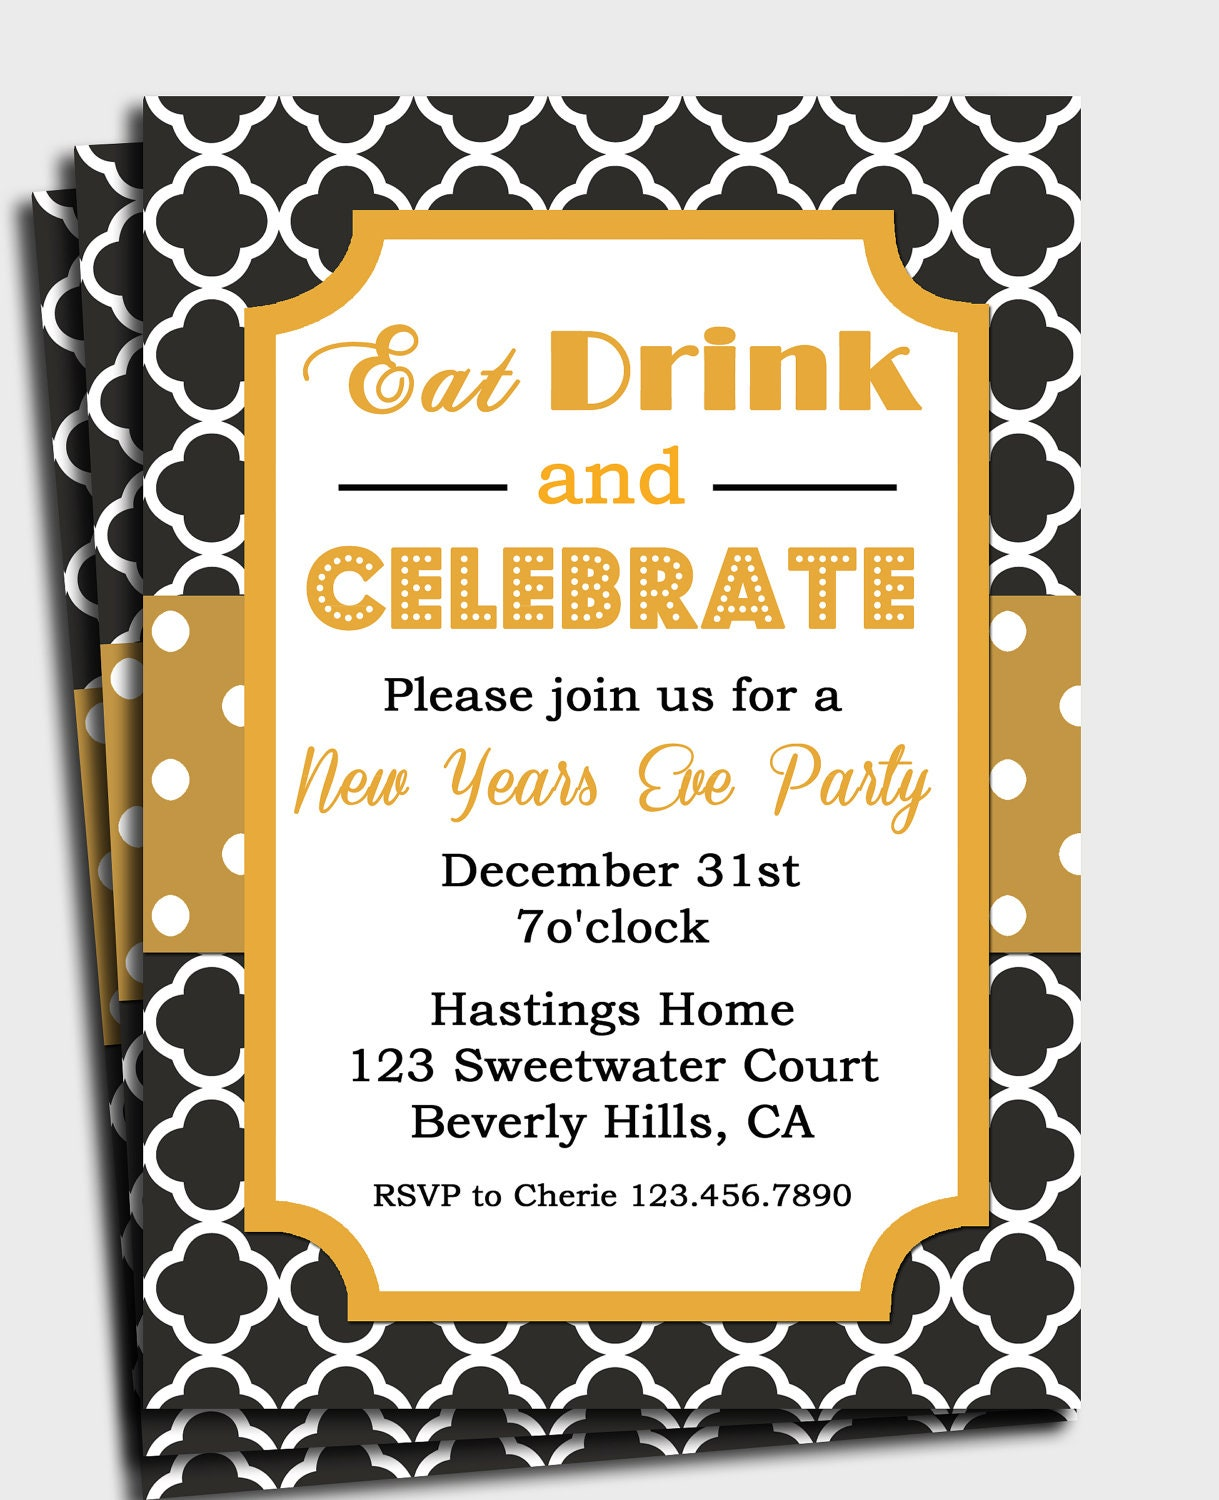 New Years Eve Invitation Printable - Eat Drink and Celebrate - Black and Gold